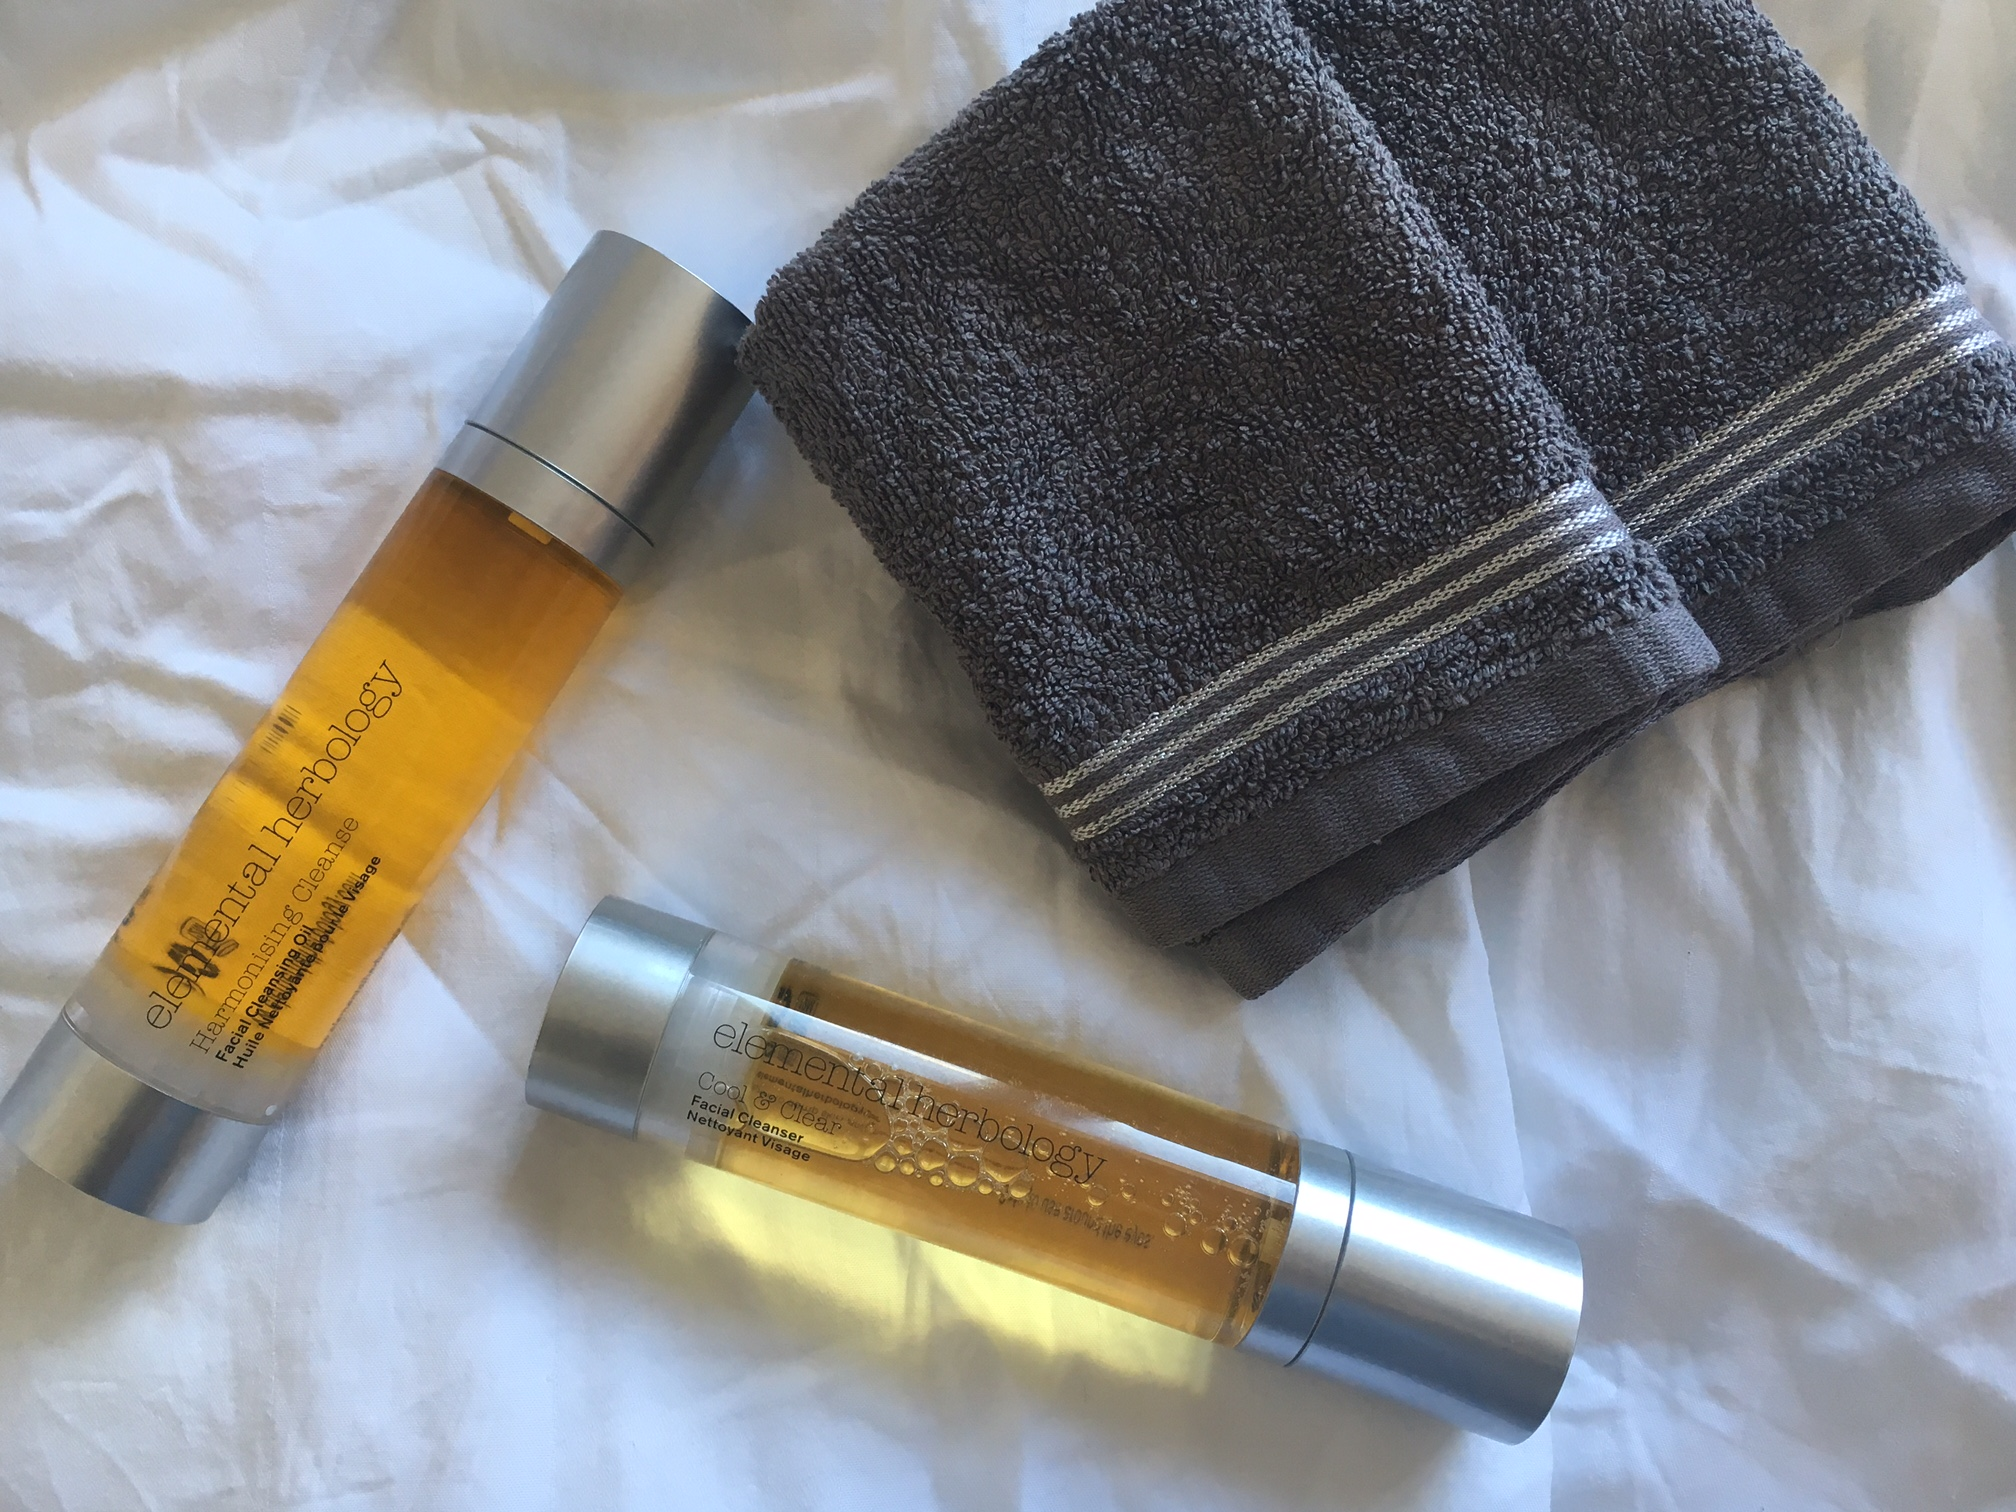 Elemental Herbology Cleansers